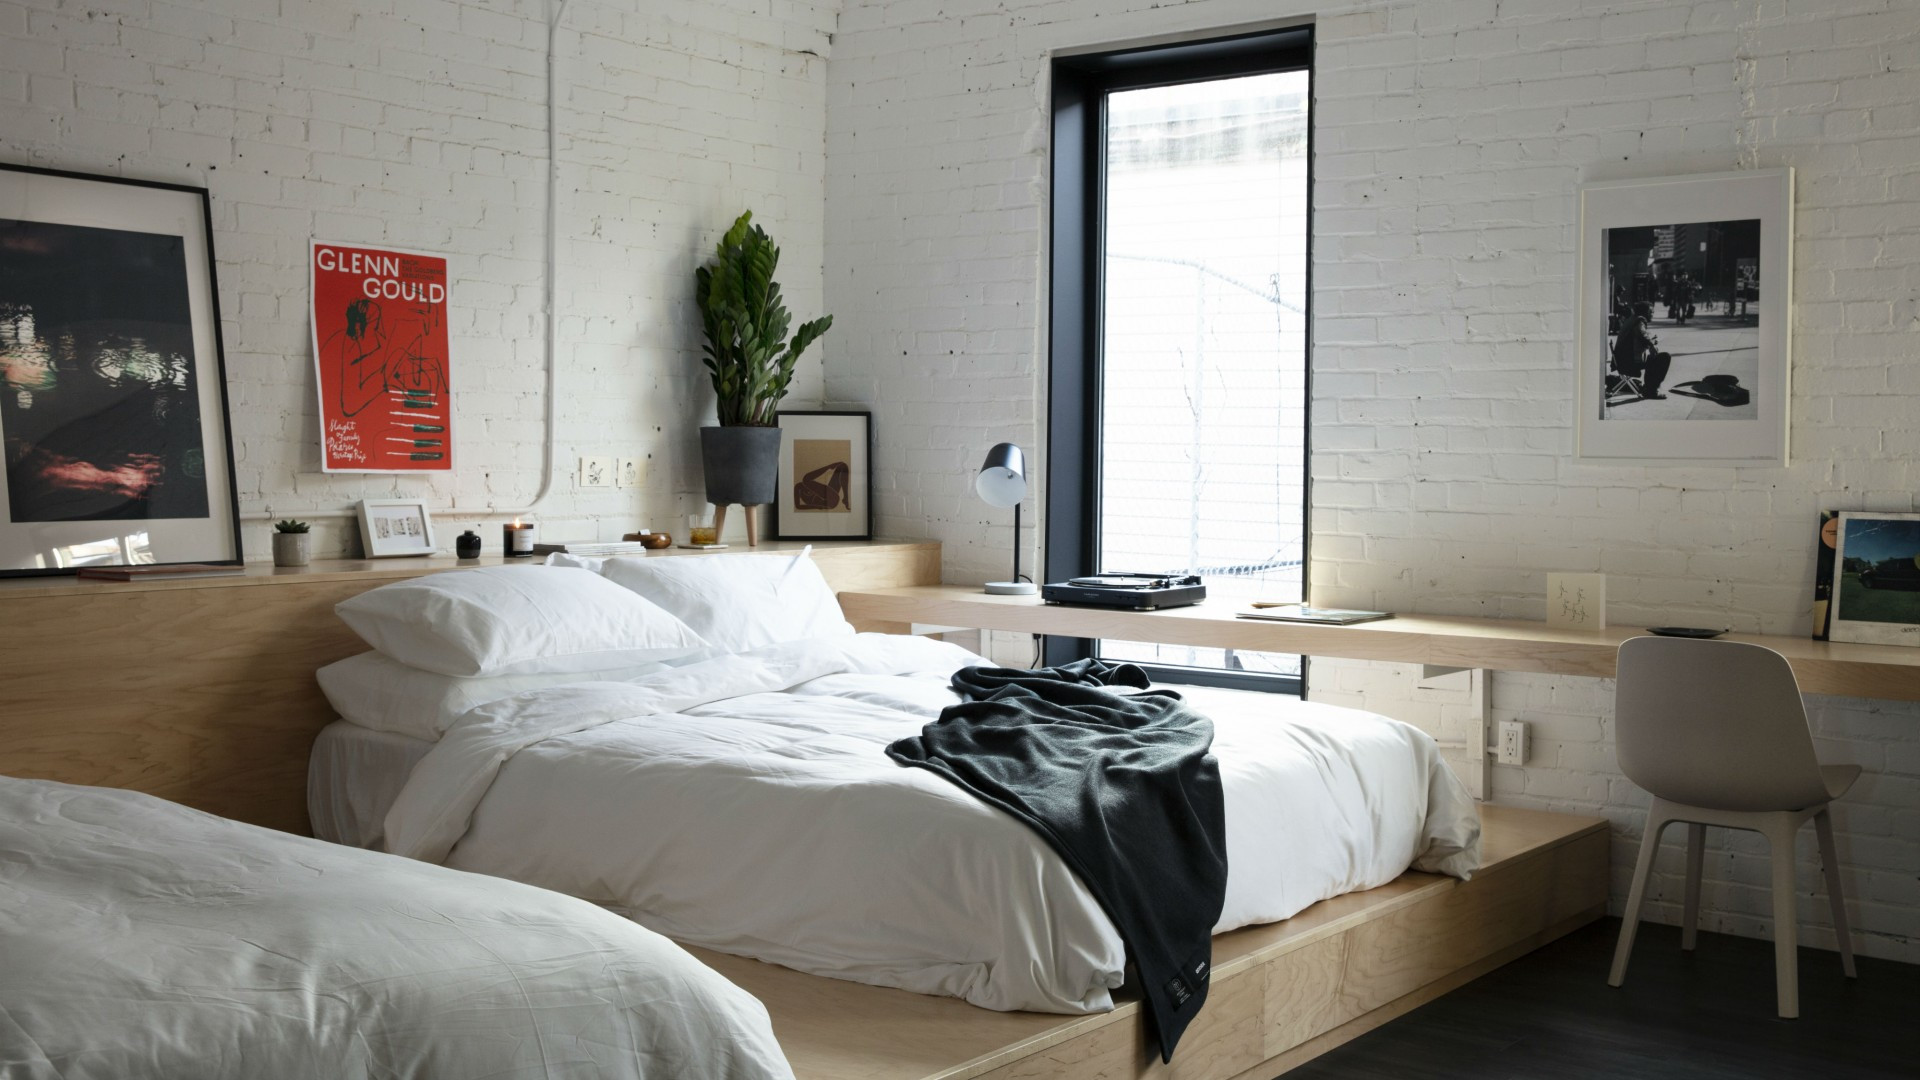 Best hotels Toronto staycation | The Annex Hotel two bedroom suite